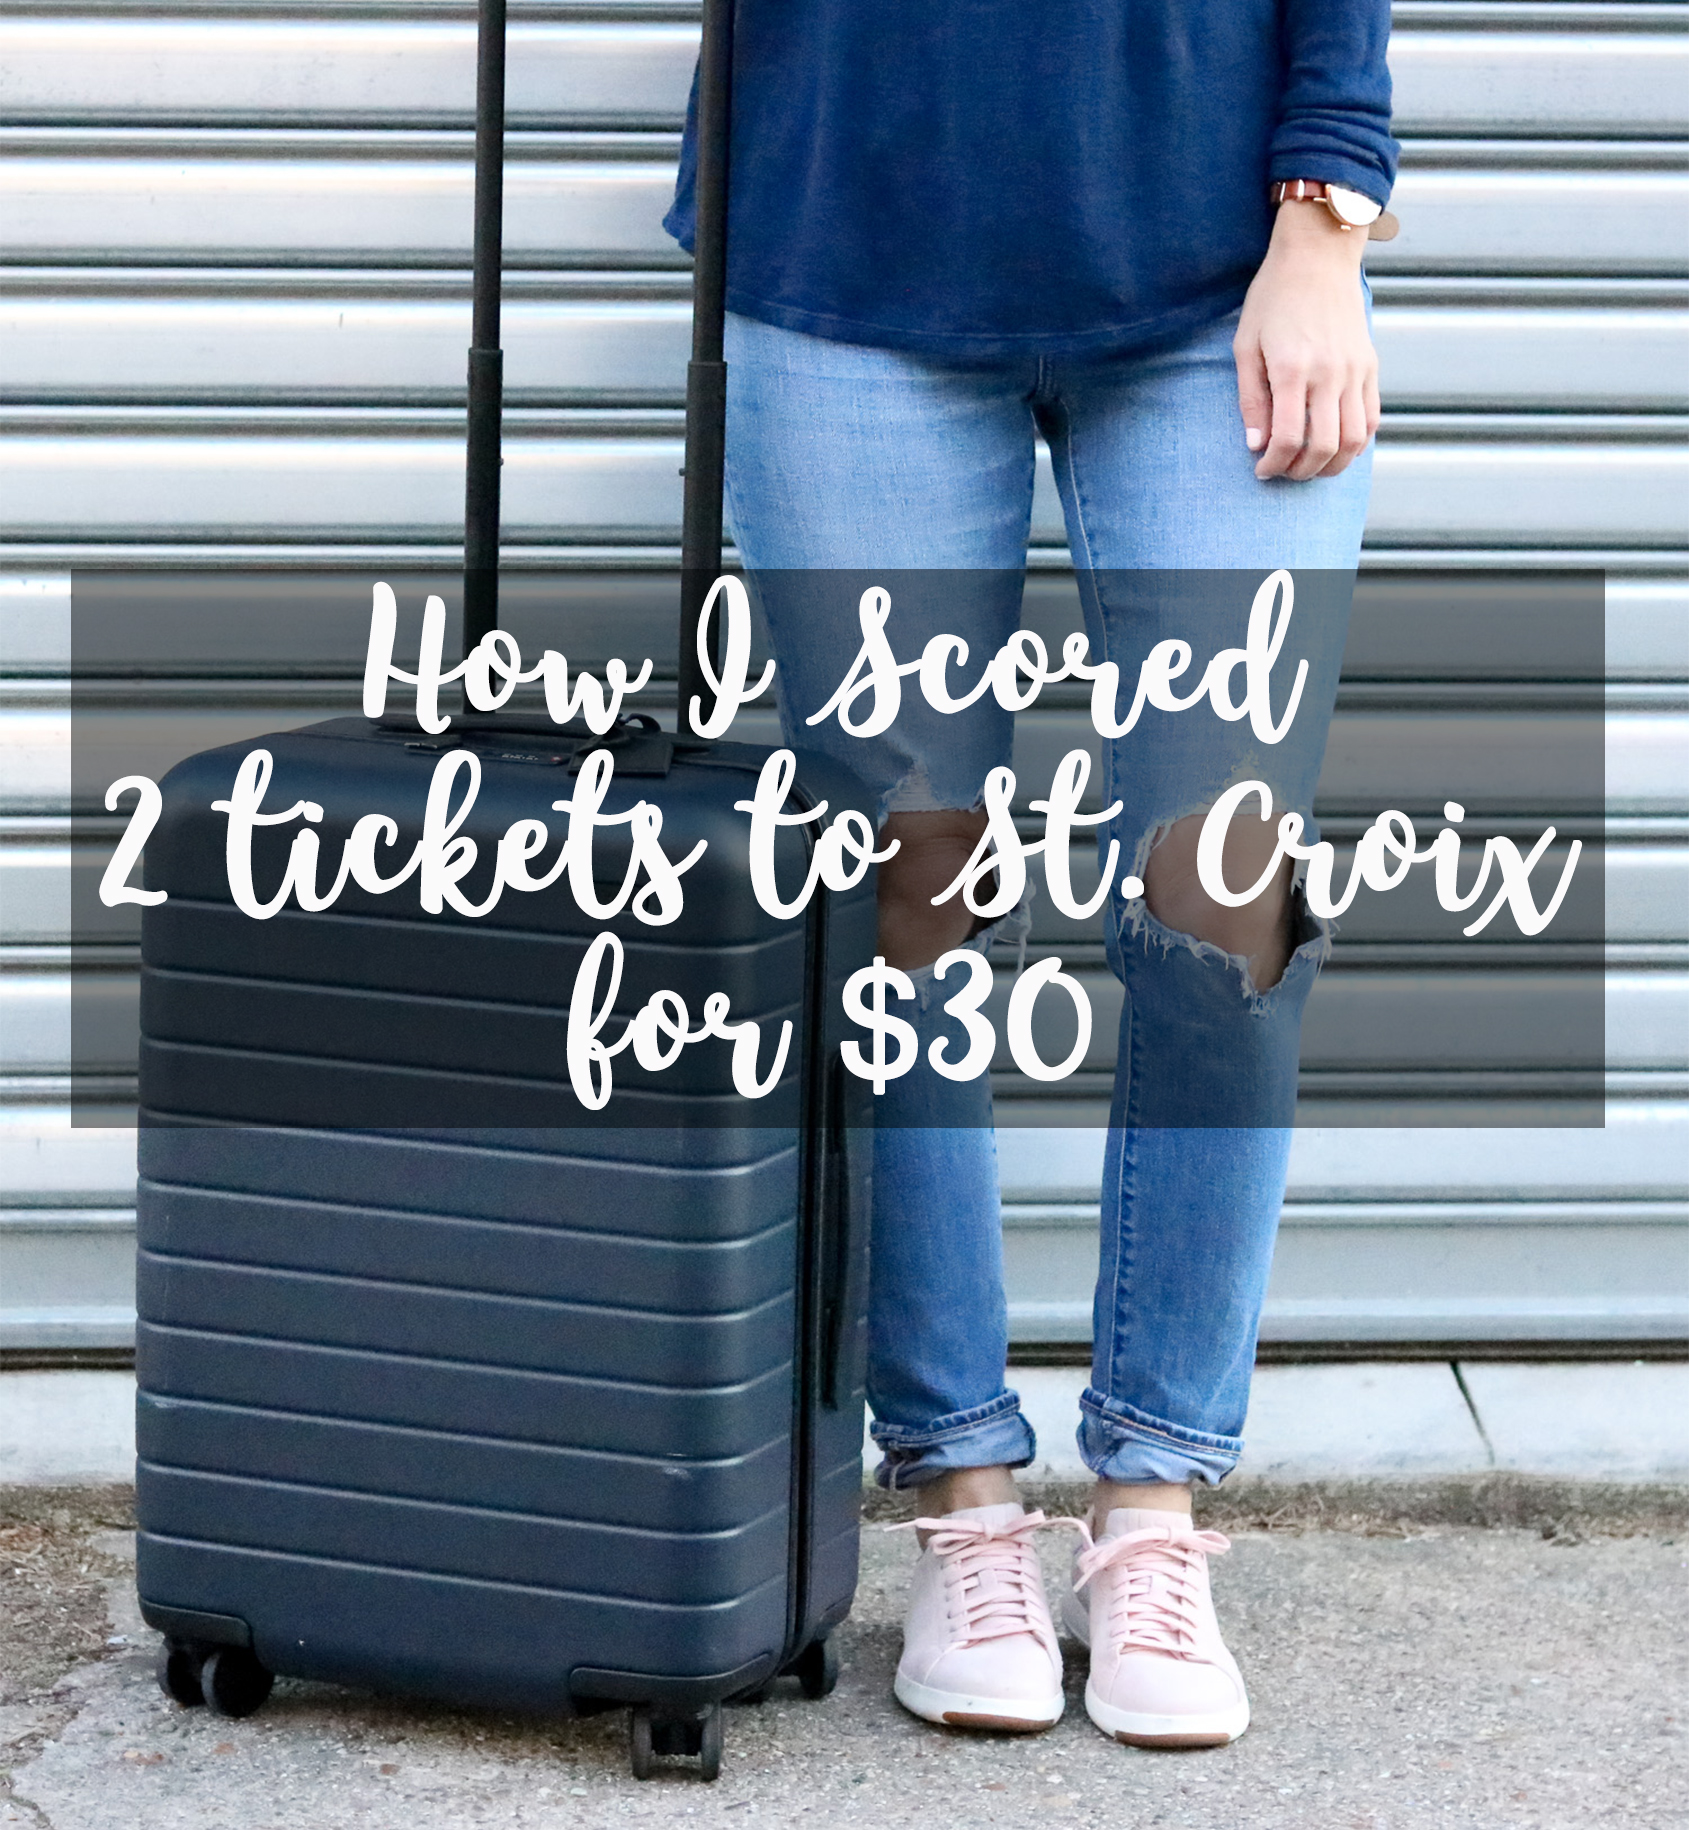 Cheap Tickets to St. Croix | Cobalt Chronicles | Washington, DC | Travel Blogger